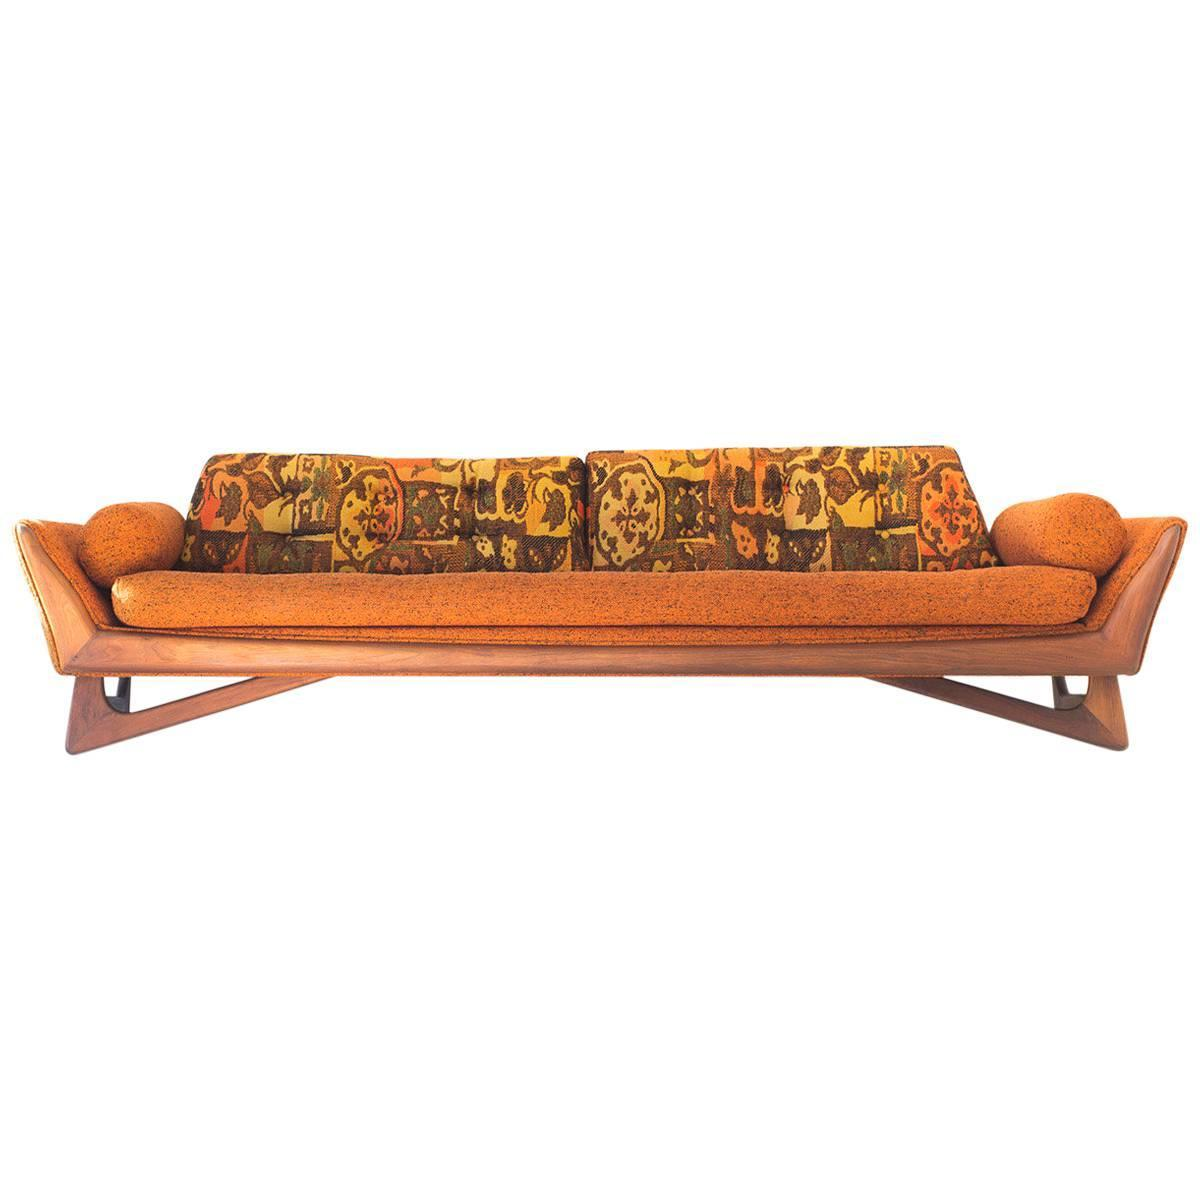 Adrian Pearsall Sofa for Craft Associates Inc at 1stdibs